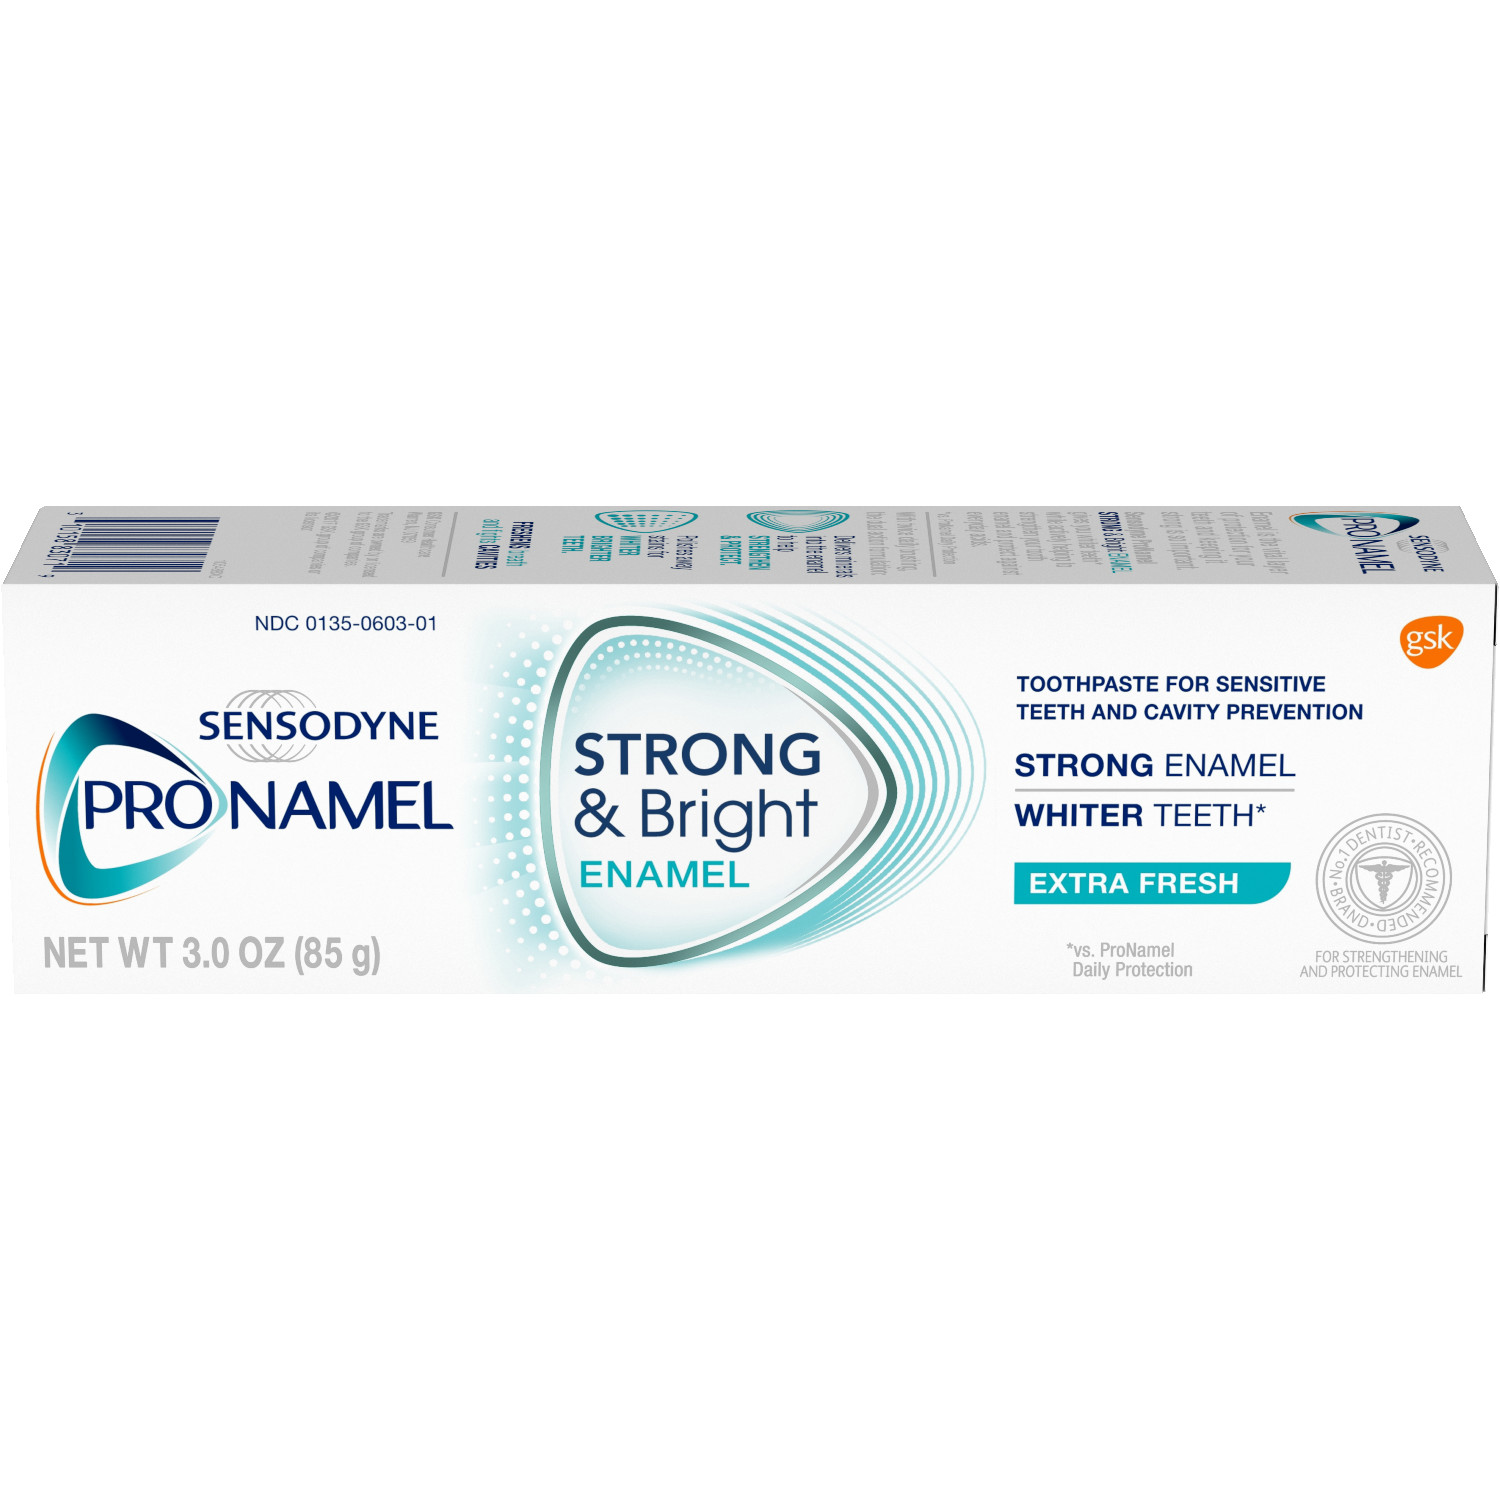 Sensodyne Pronamel Strong & Bright Extra Fresh Fluoride Toothpaste to Strengthen and Protect Enamel, 3 ounce